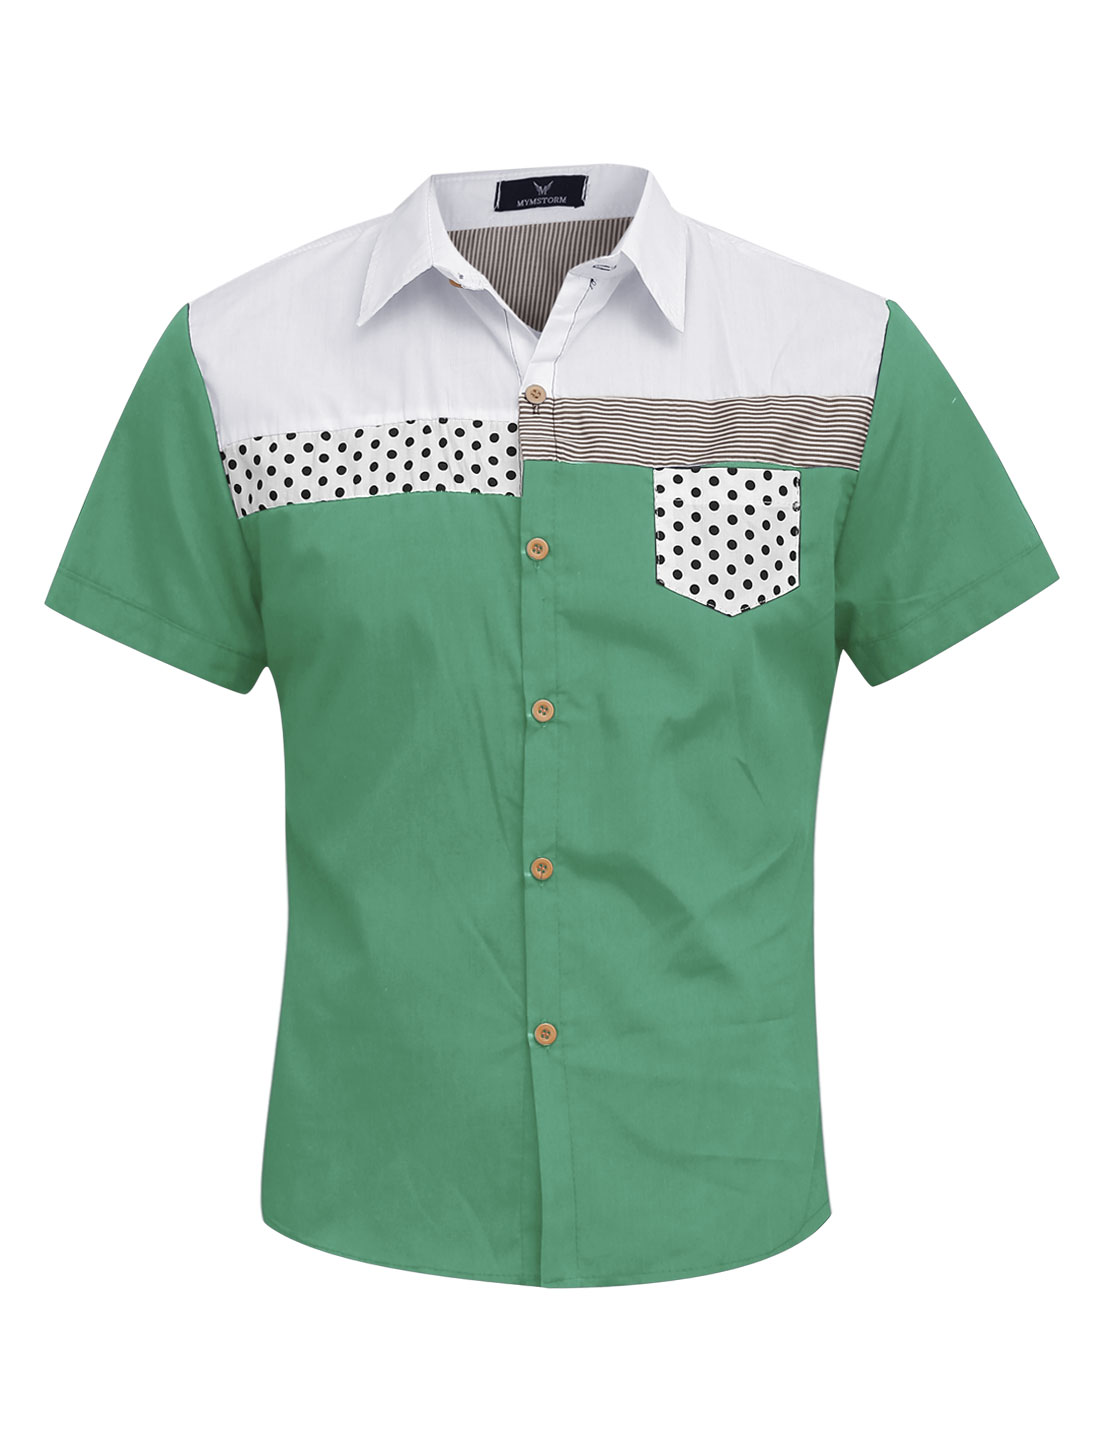 Men Buttons Up Closed Chest Pocket Summer Casual Shirt Green M